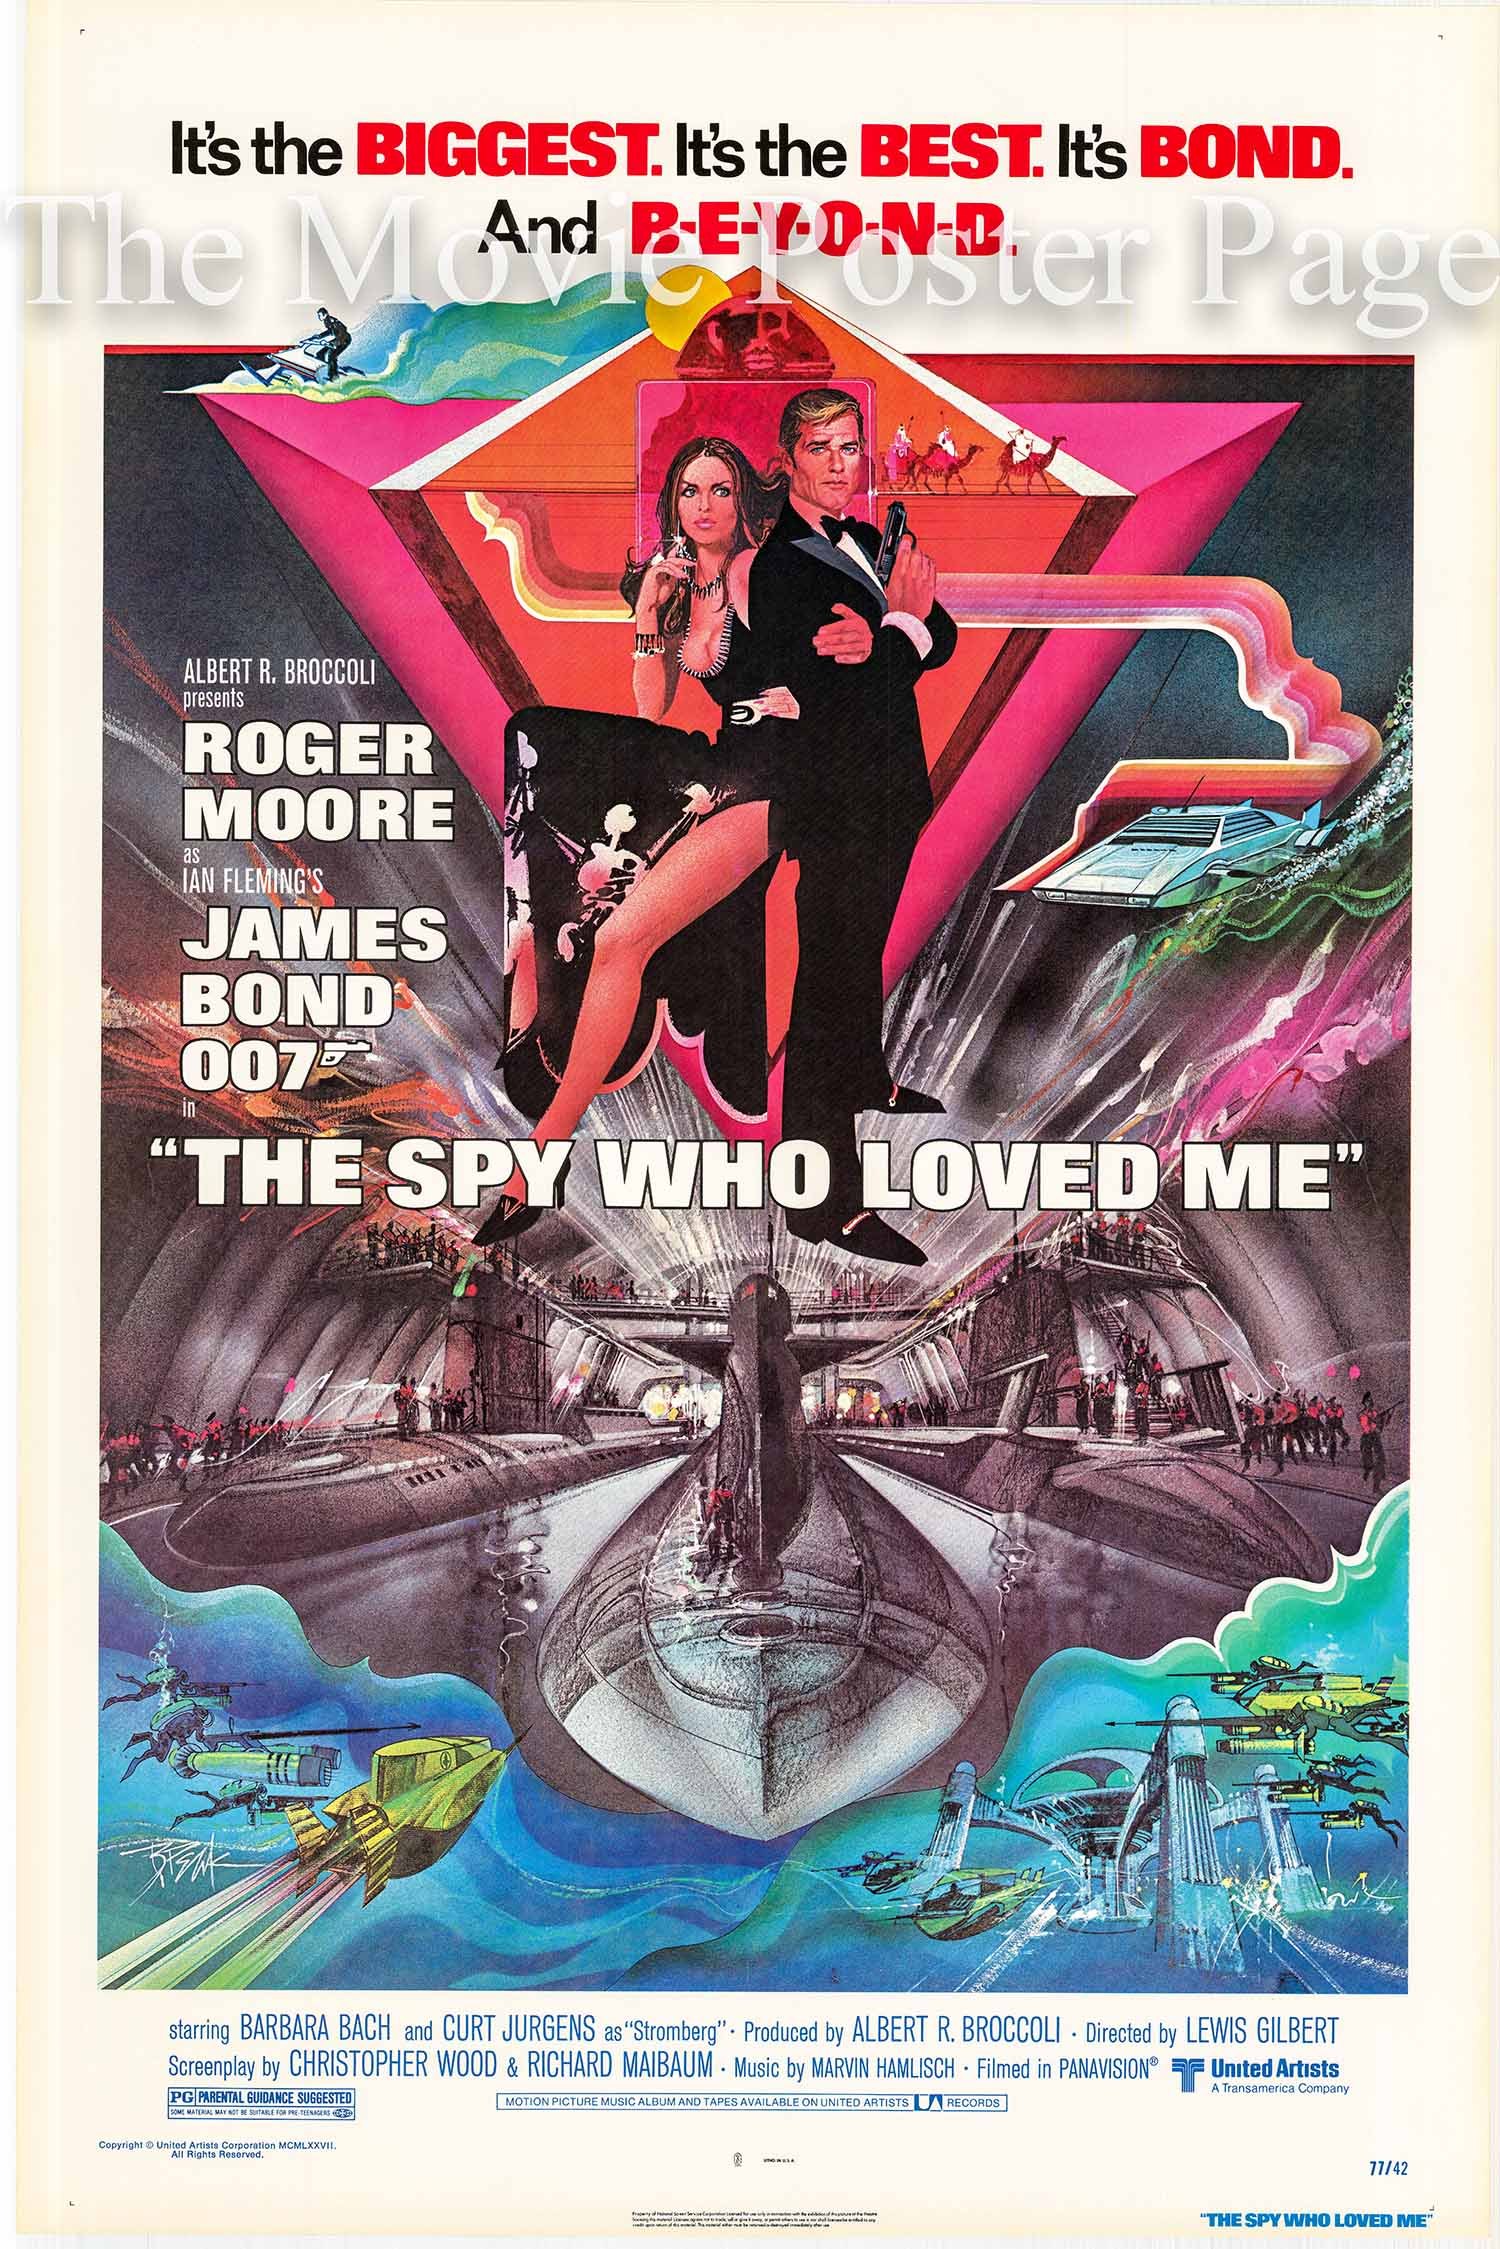 Pictured is a US one-sheet promotional poster featuring art by Bob Peak for the 1977 Lewis Gilbert film The Spy Who Loved Me starring Roger Moore as James Bond.